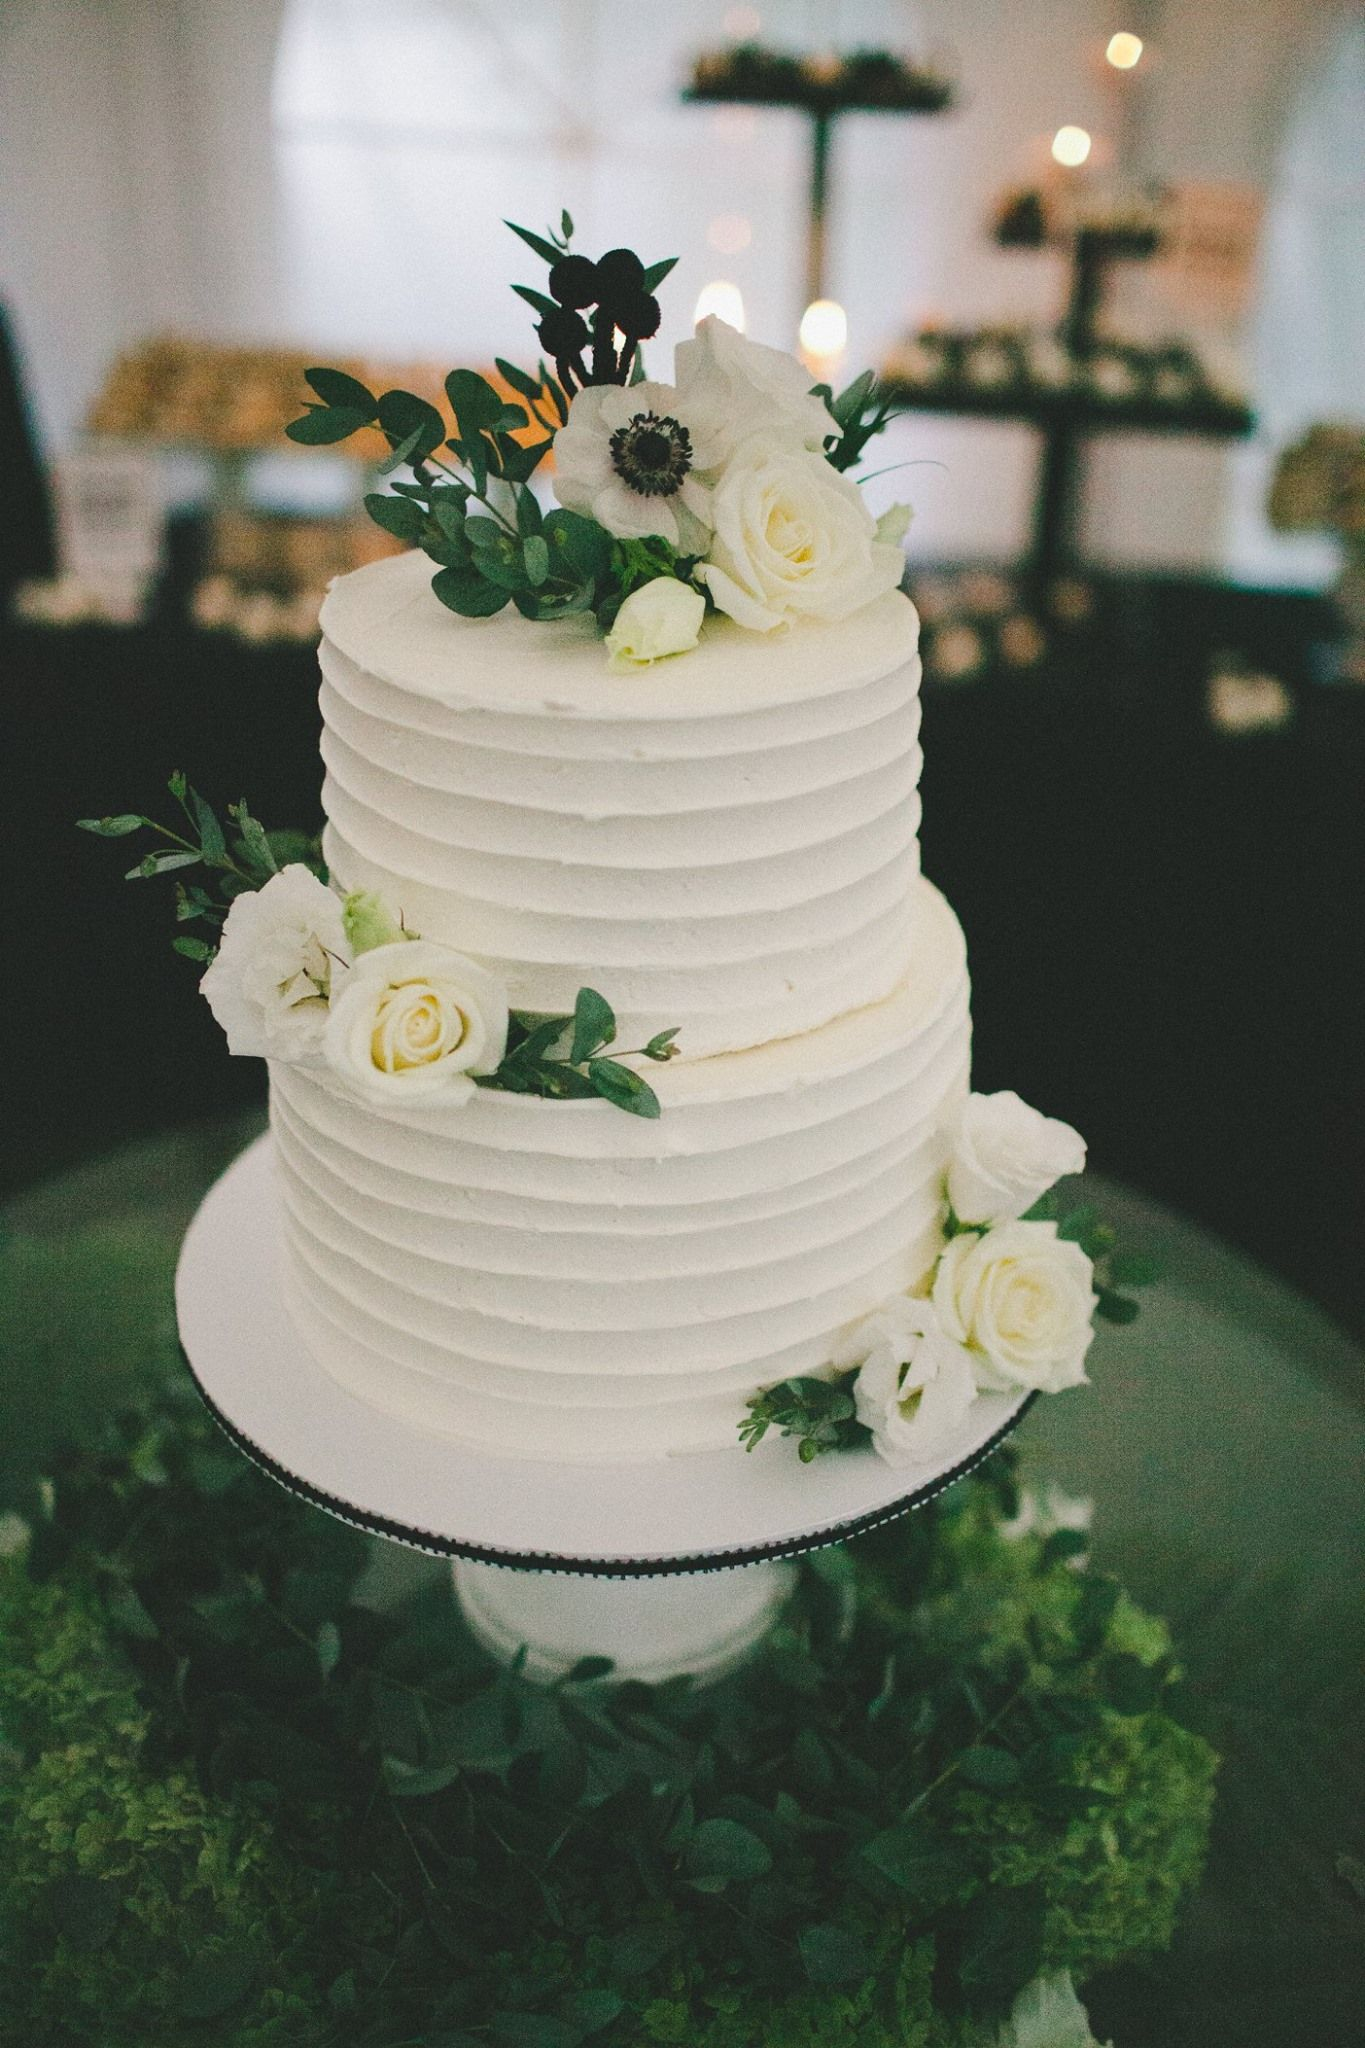 Simple twotier wedding cake covered in real blossoms and